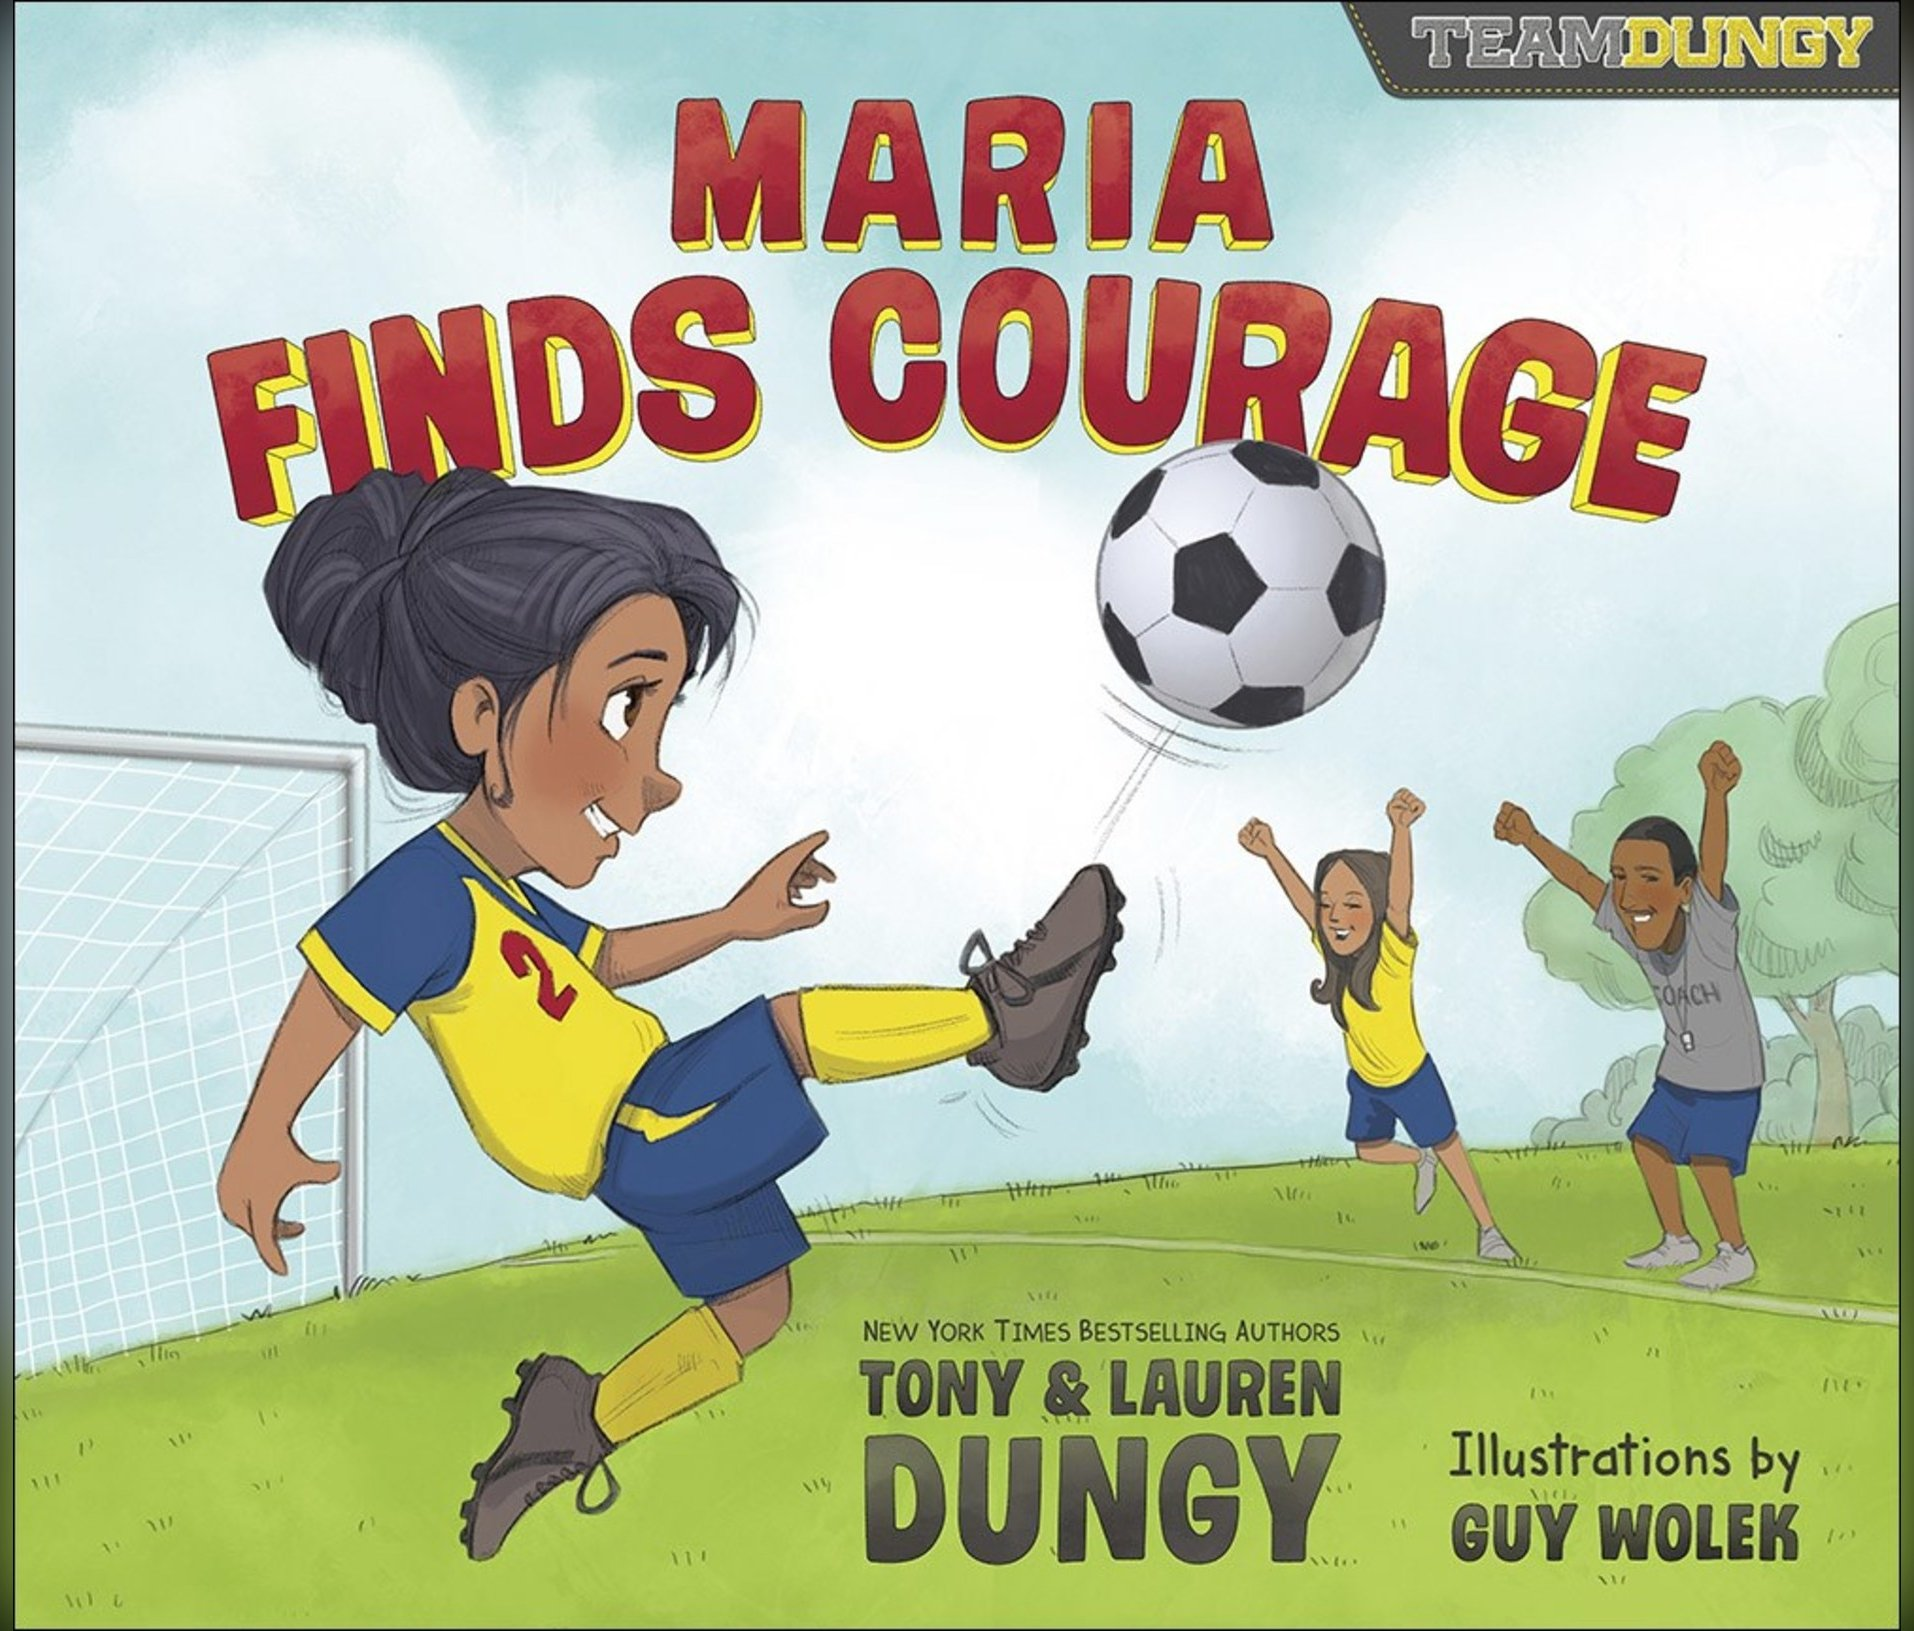 Download Maria Finds Courage: A Team Dungy Story About Soccer pdf